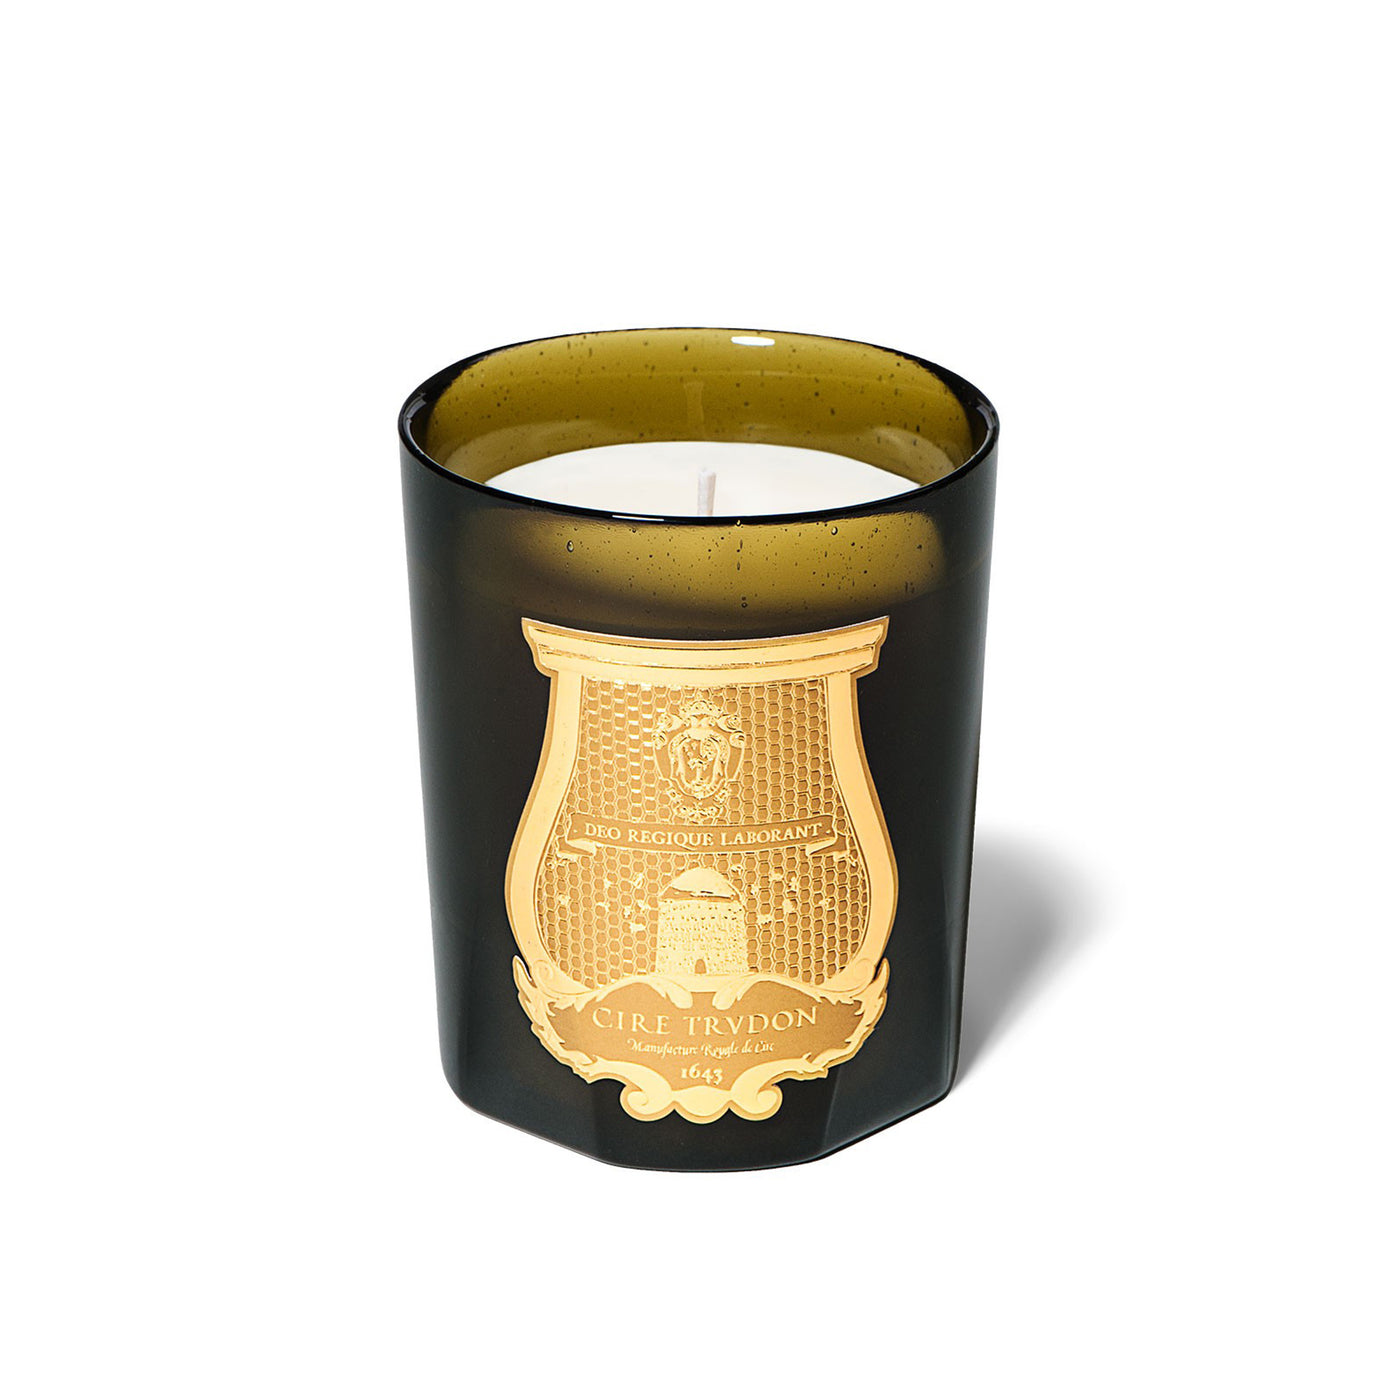 Cire Trudon Candle - Madeleine